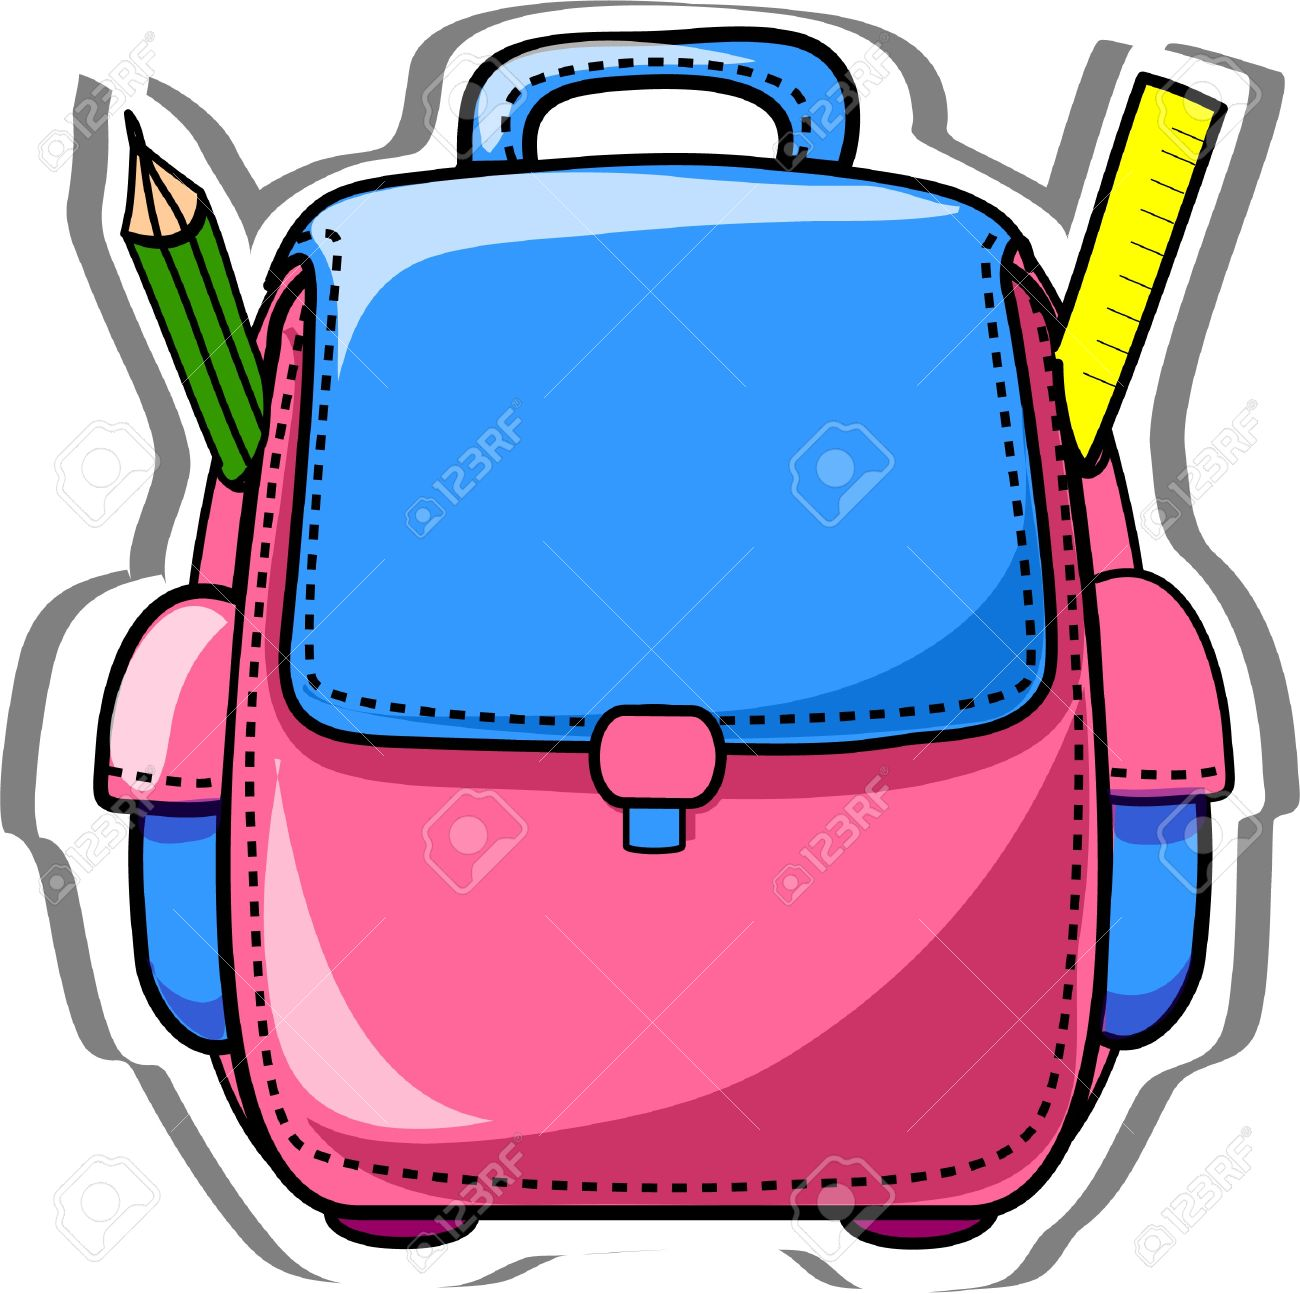 School bags clipart 5 » Clipart Station.